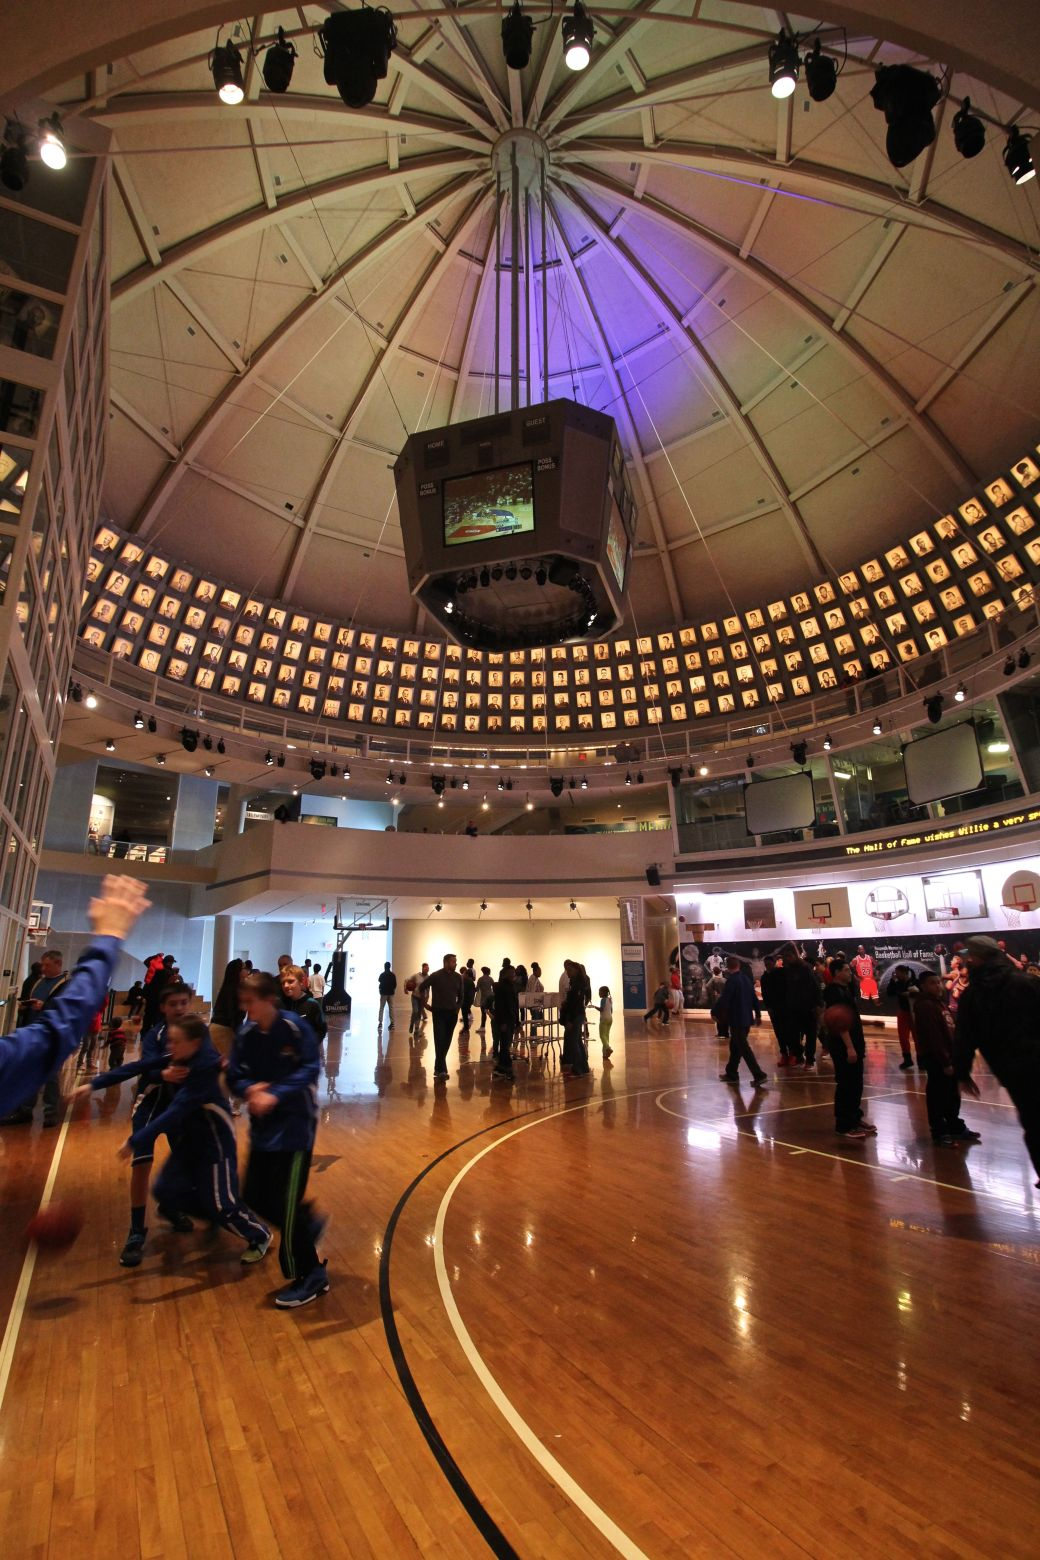 Springfield Naismith Memorial Basketball Hall of Fame basketball court floor